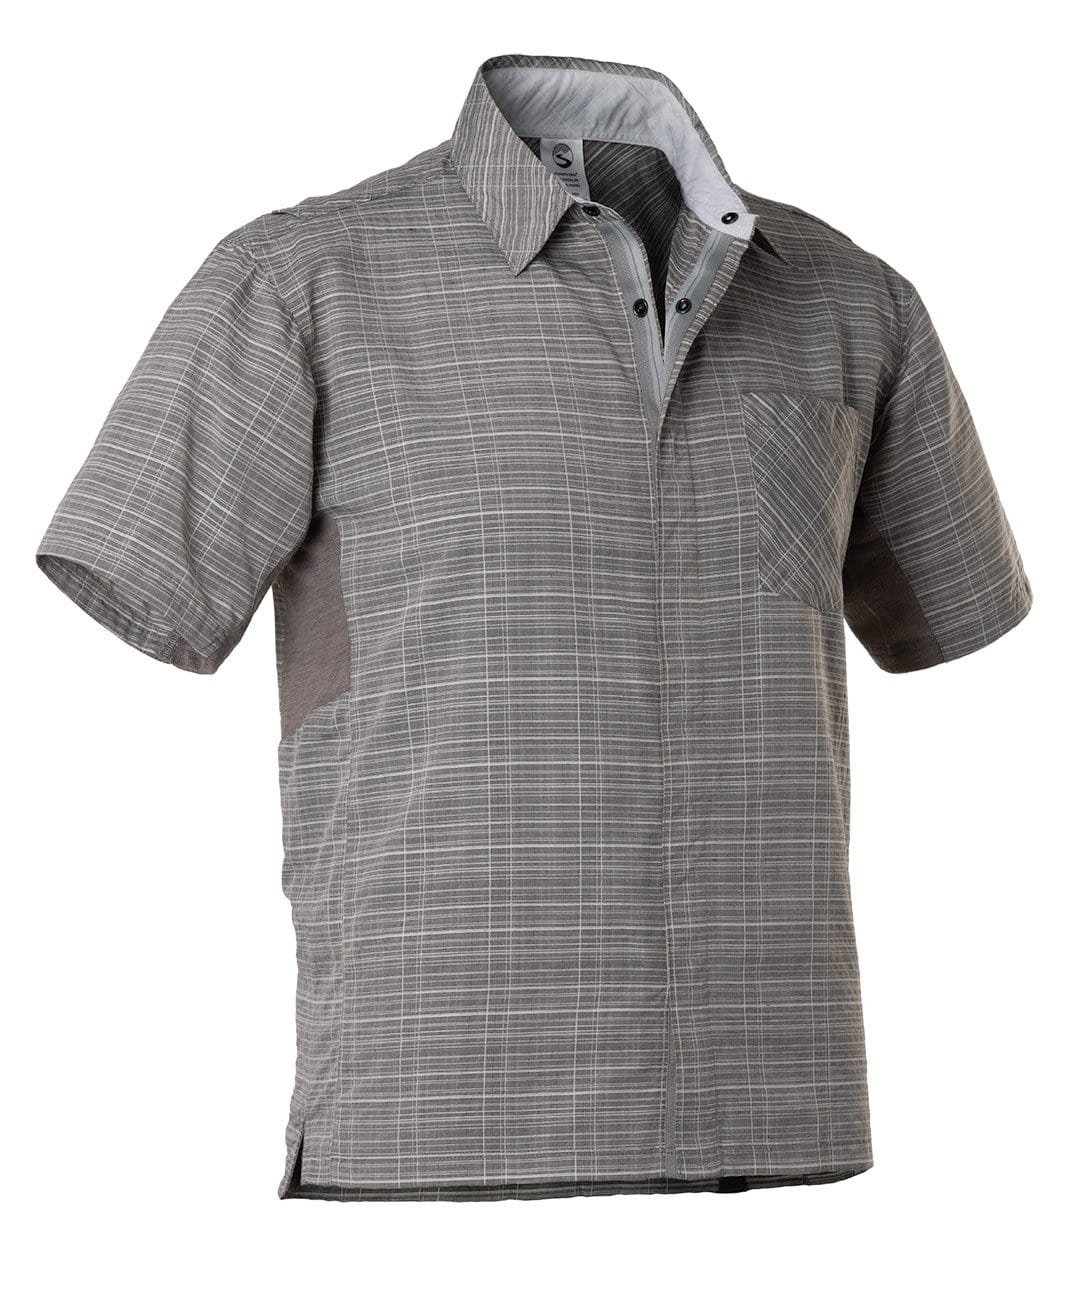 Men's Scout Shirt Short Sleeve